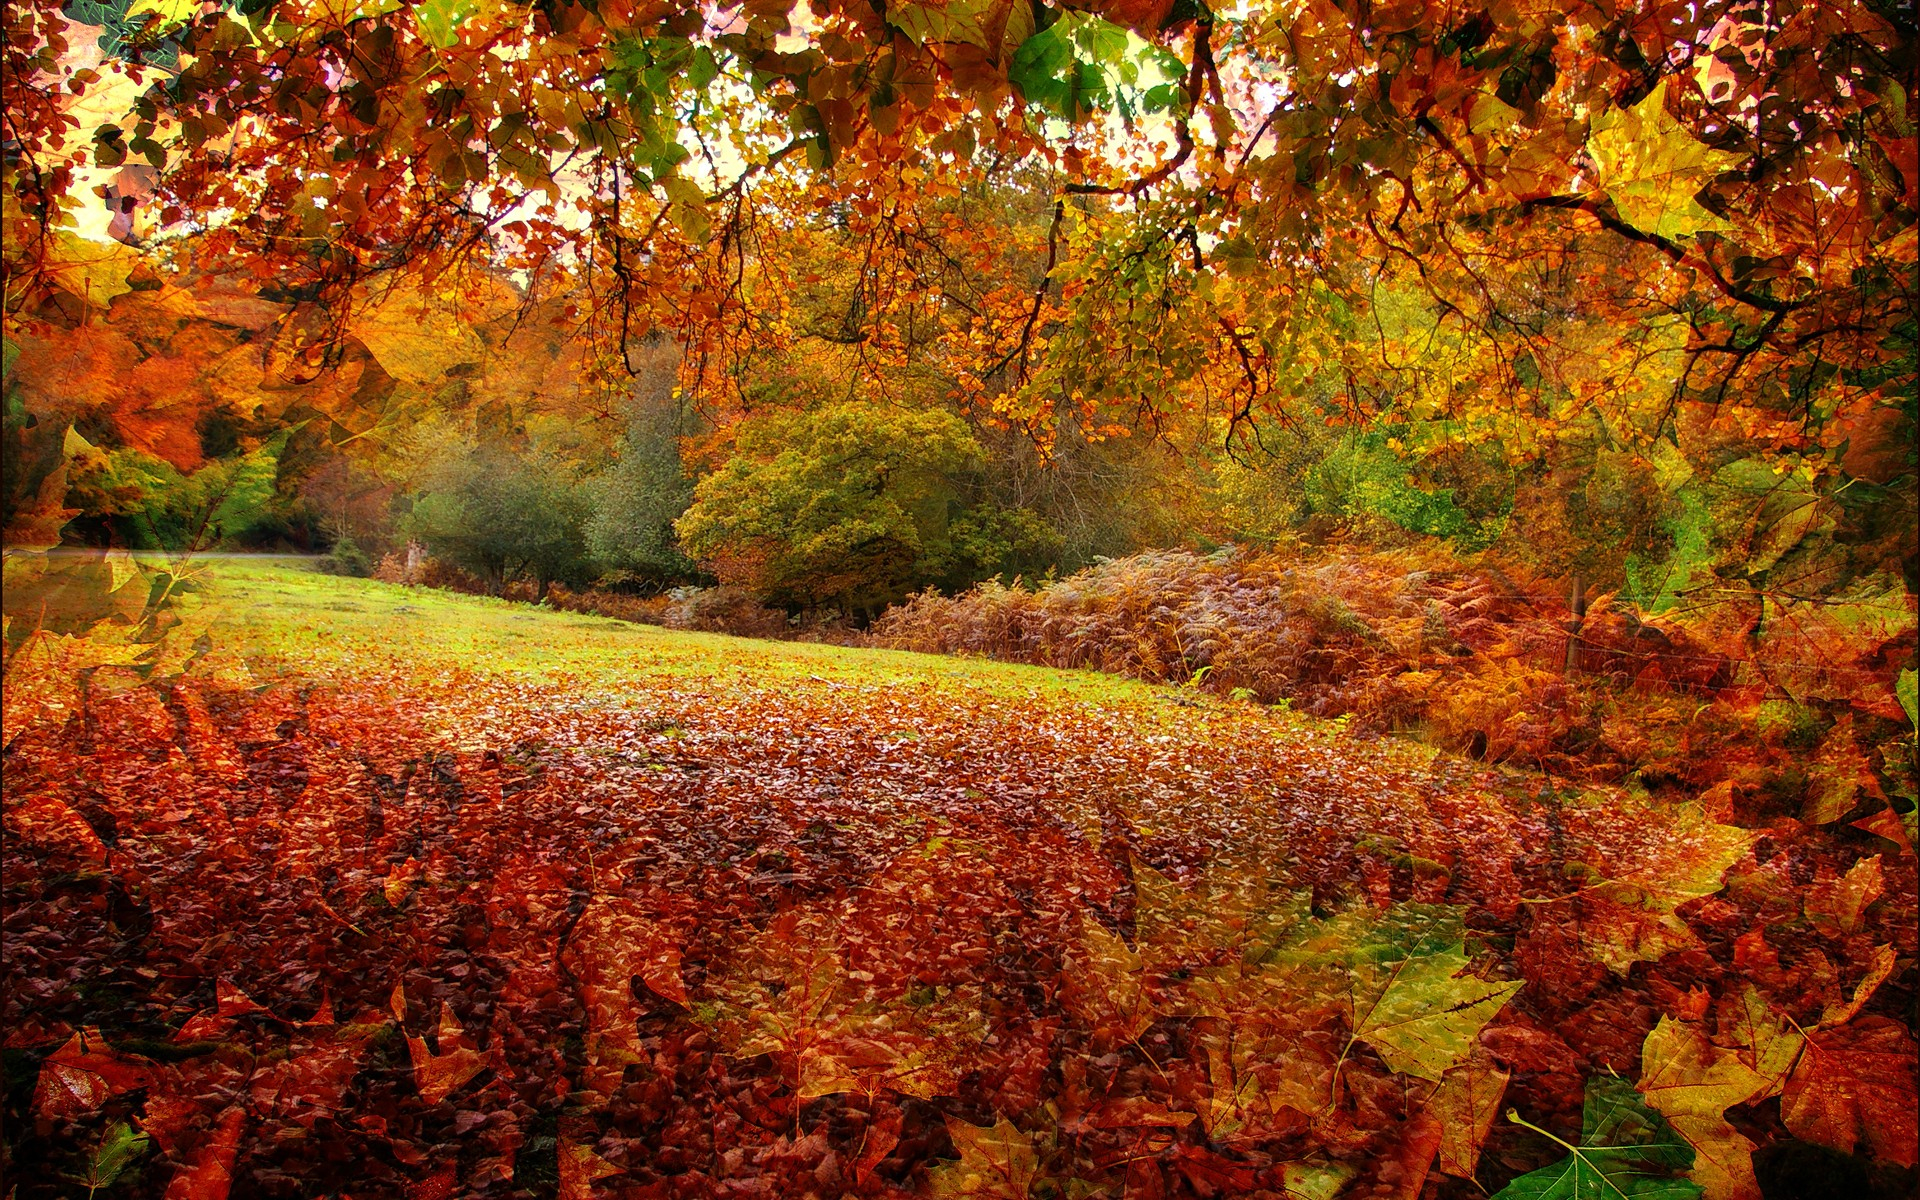 Iphone Wallpaper Fall Leaves Fall Hd Wallpaper Background Image 1920x1200 Id